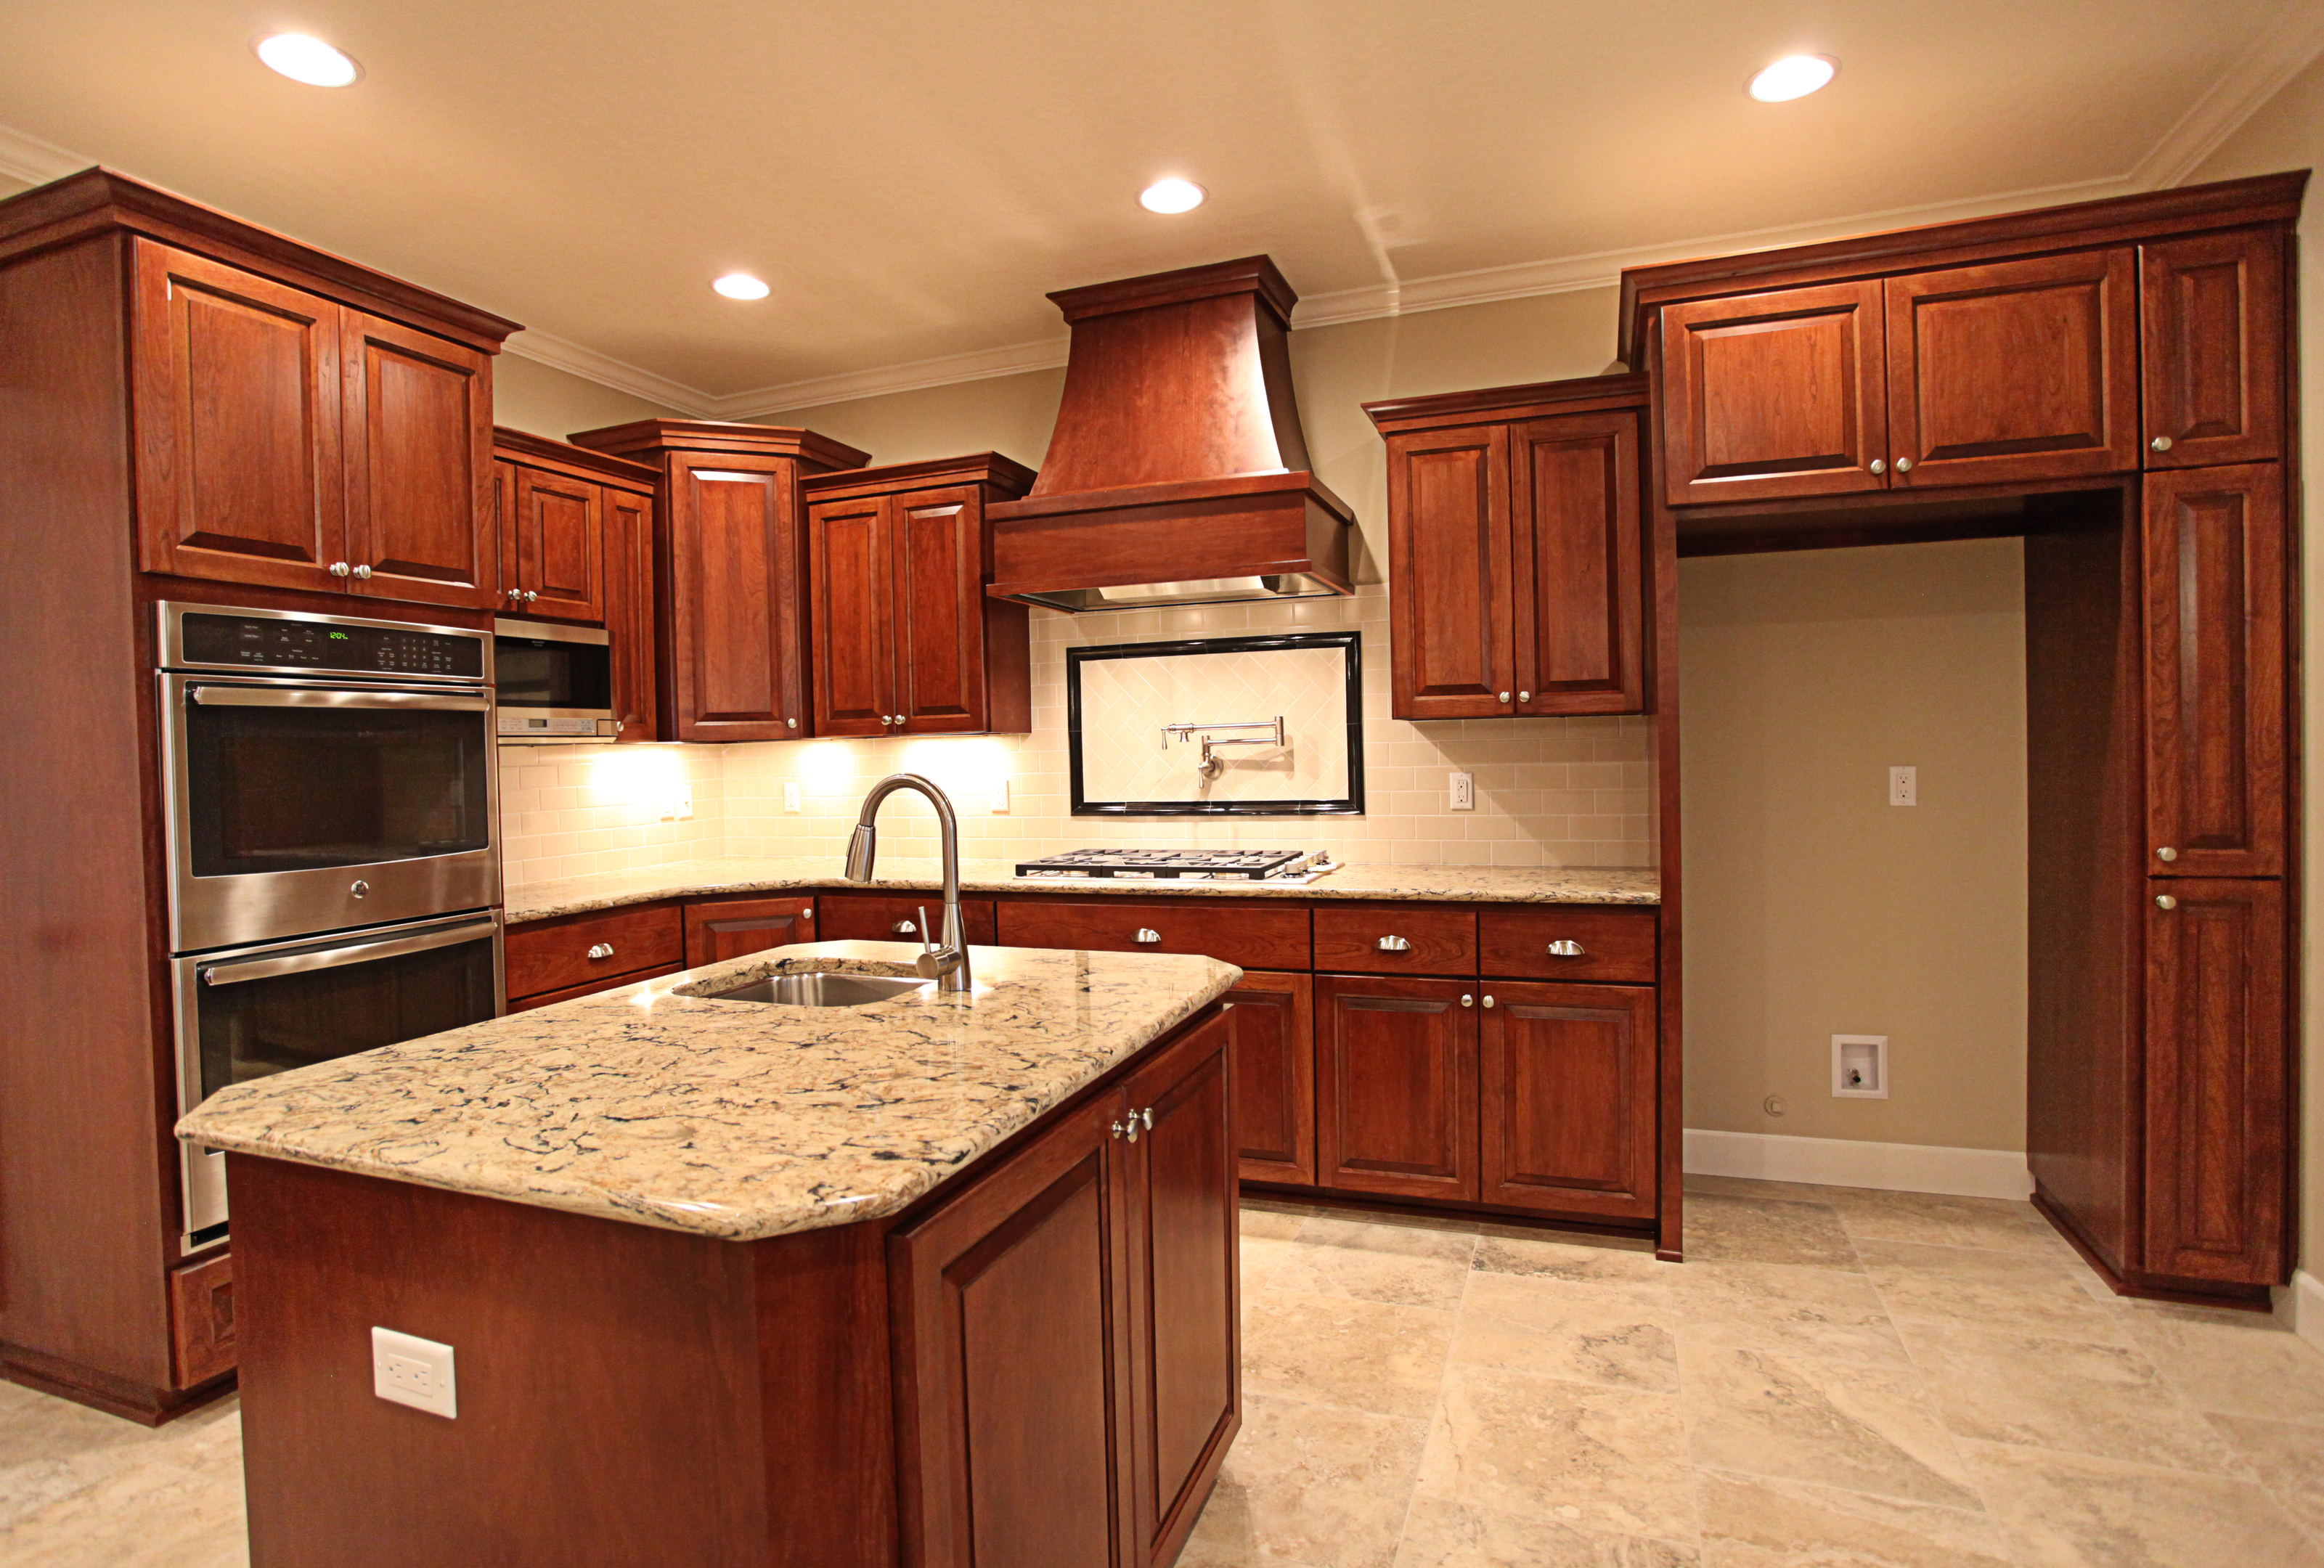 Kitchen  traditional style  cherry  dark color  raised panel  wood hood  micro in upper  staggered heights  small sink in island  narrow pantry cabinet   13 crown